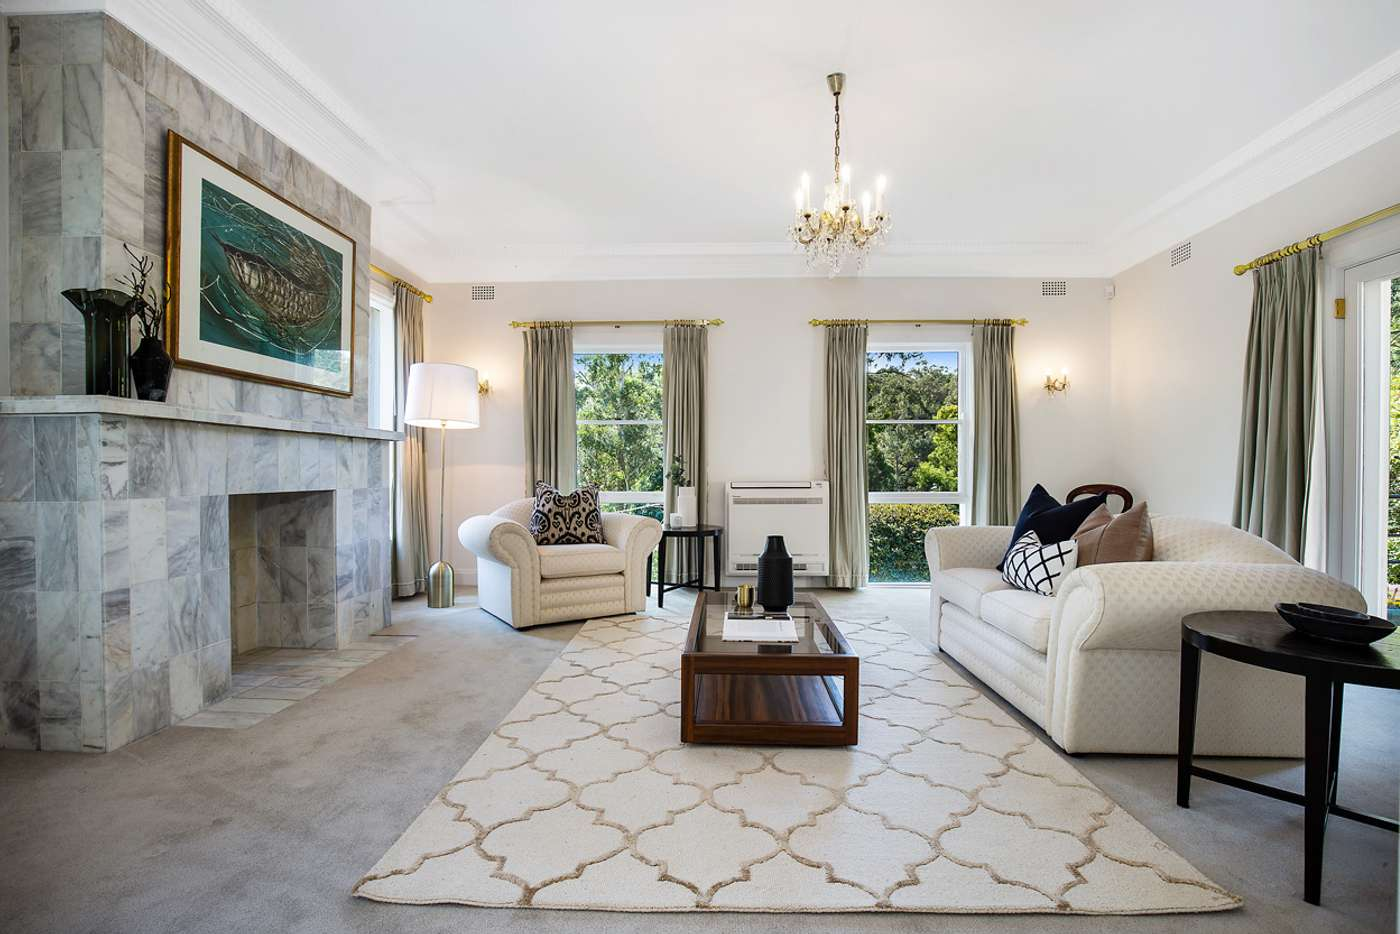 Fifth view of Homely house listing, 17 Myoora Street, Pymble NSW 2073